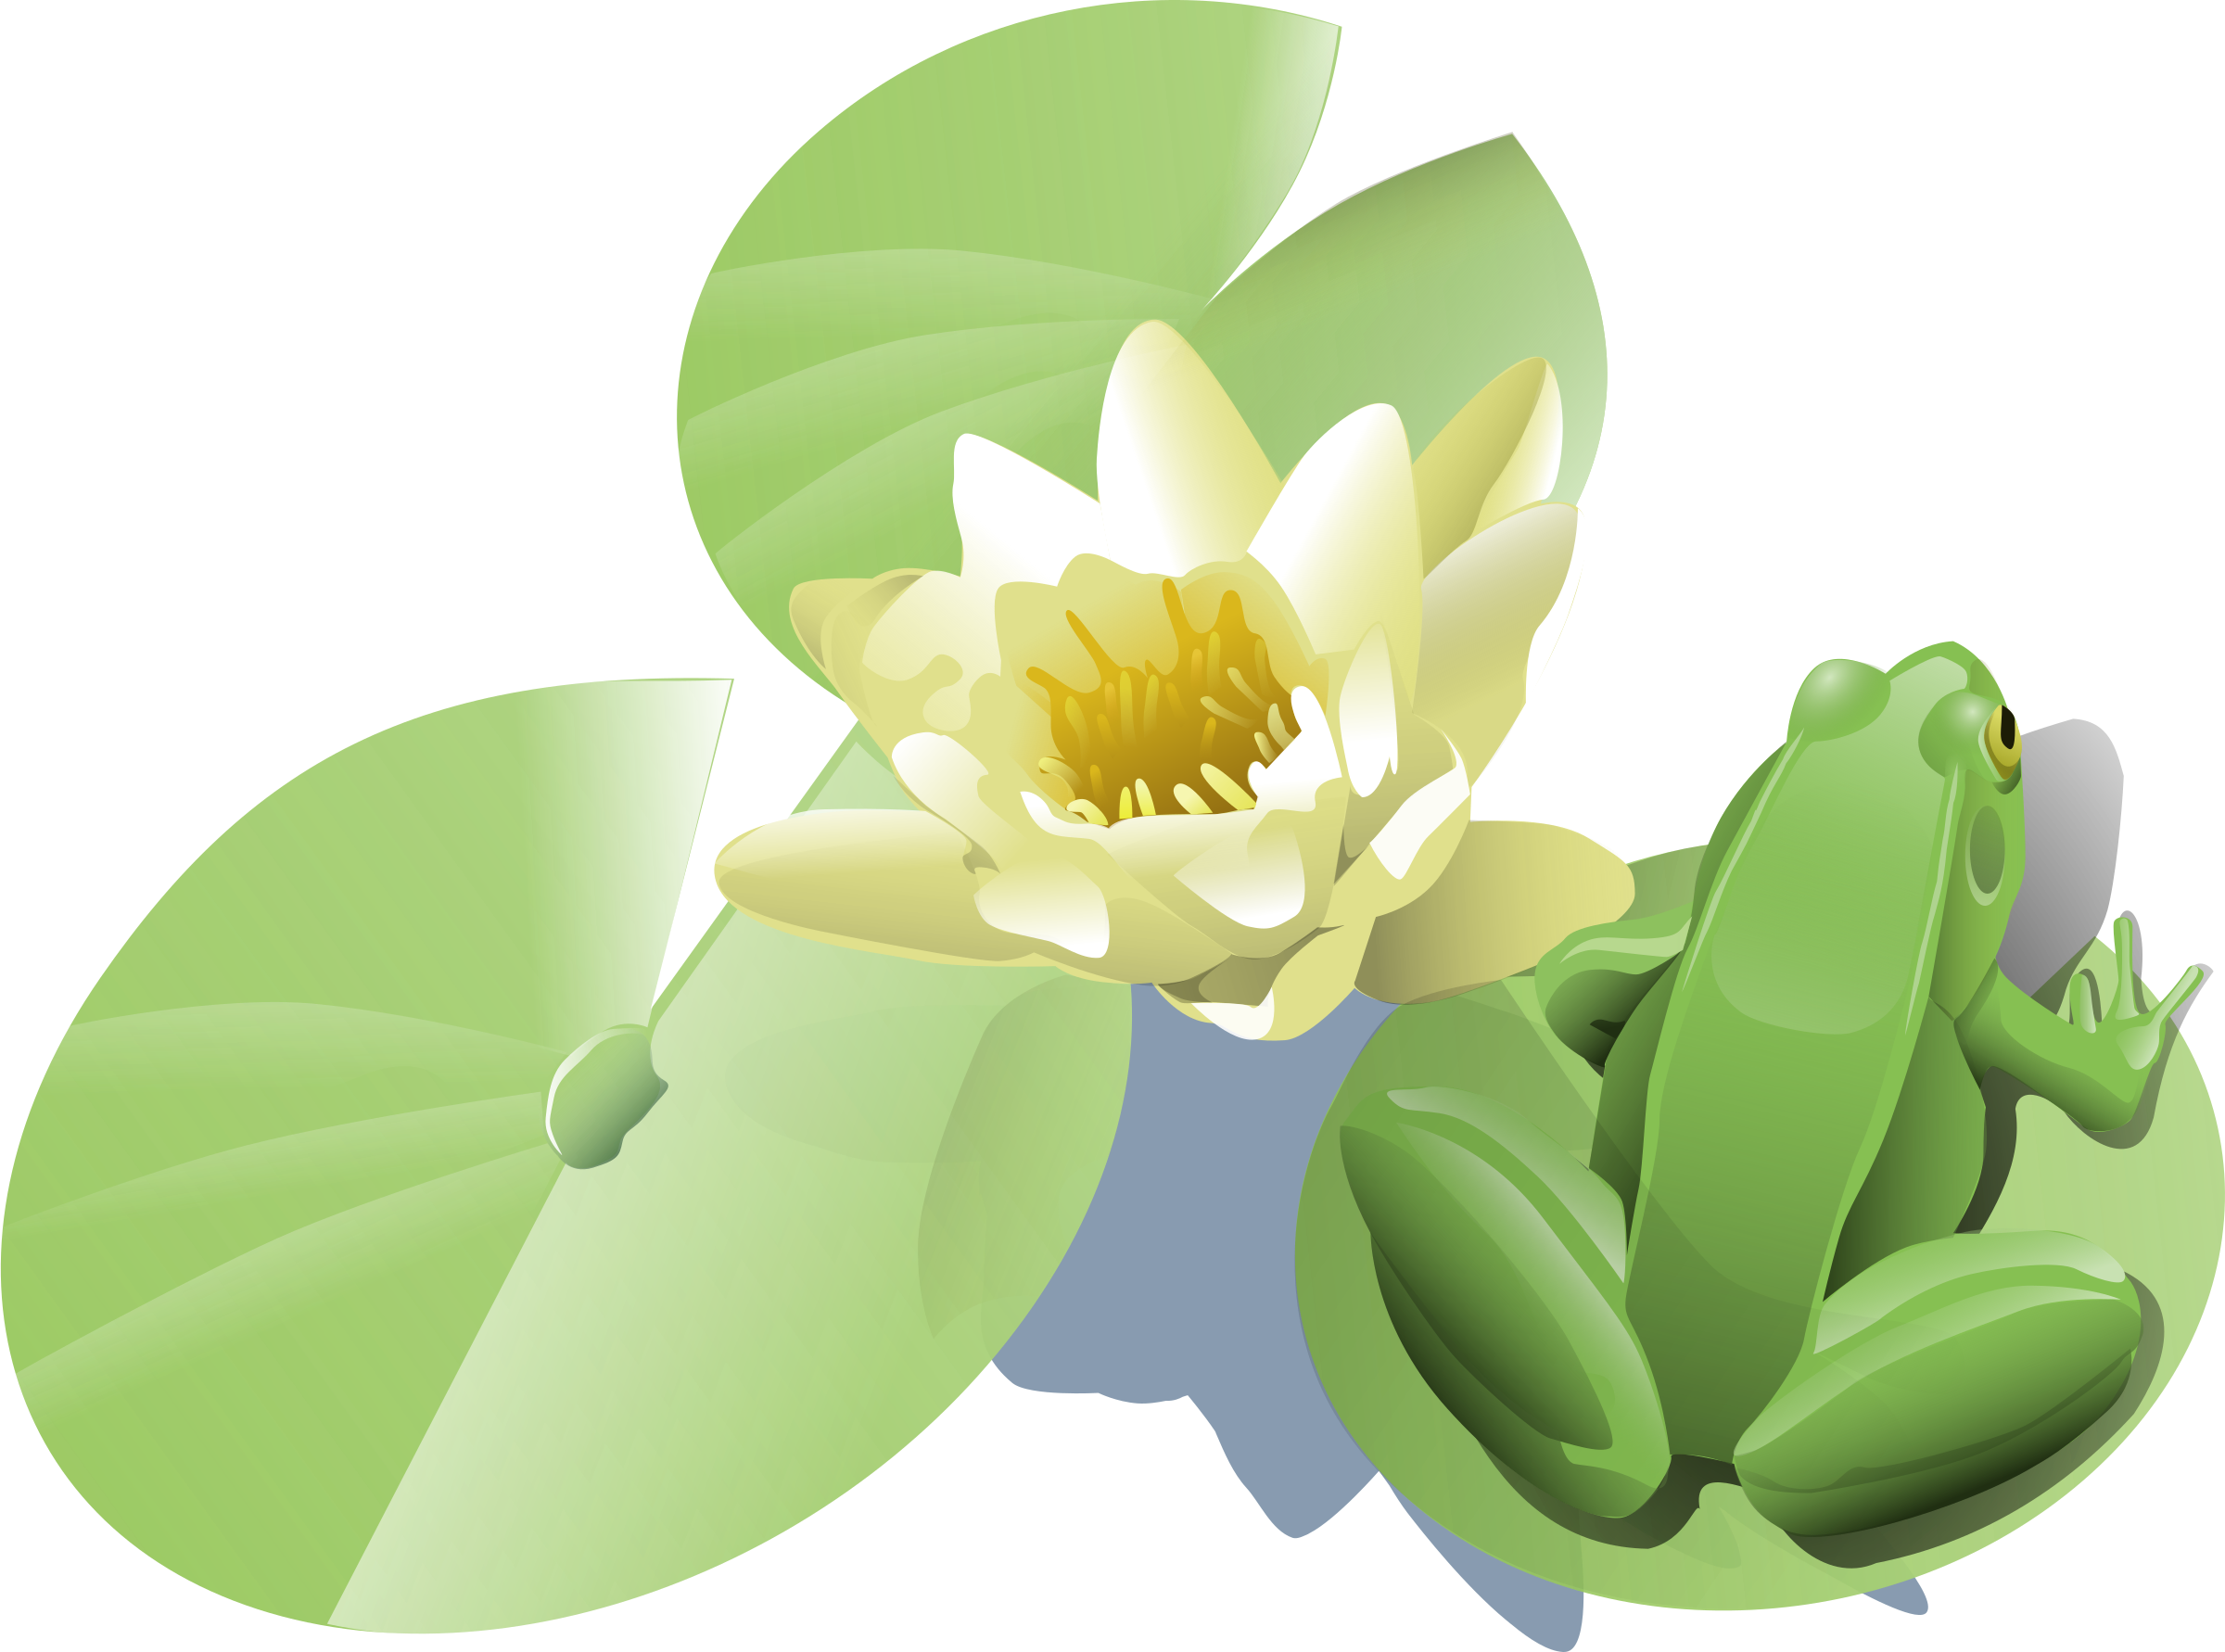 Water lily flower clipart picture transparent stock Clipart - Frog on a lily pad picture transparent stock